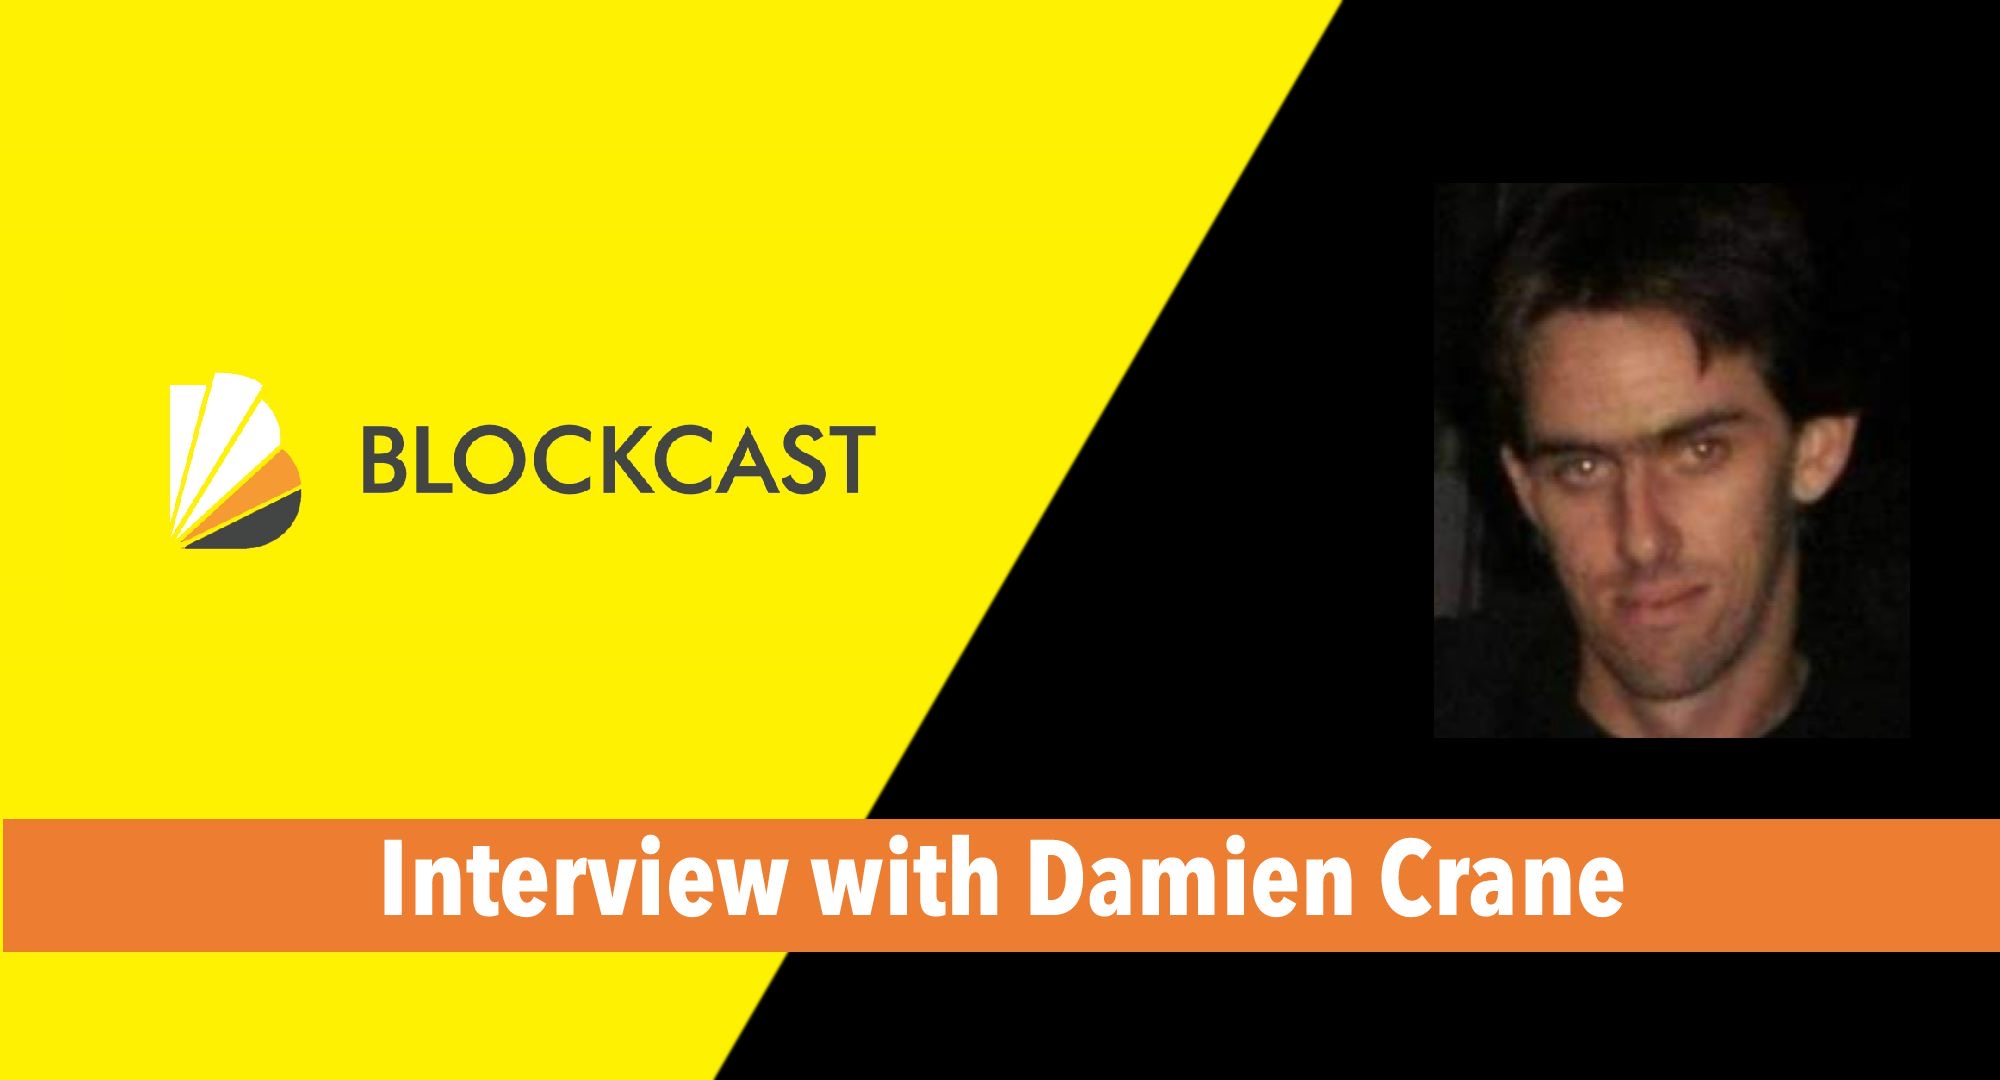 Blockcastcc Finds Out more about TronAO from its Creator Damien Crane The important thing is not to stop questioning Curiosity has its own reason for existing